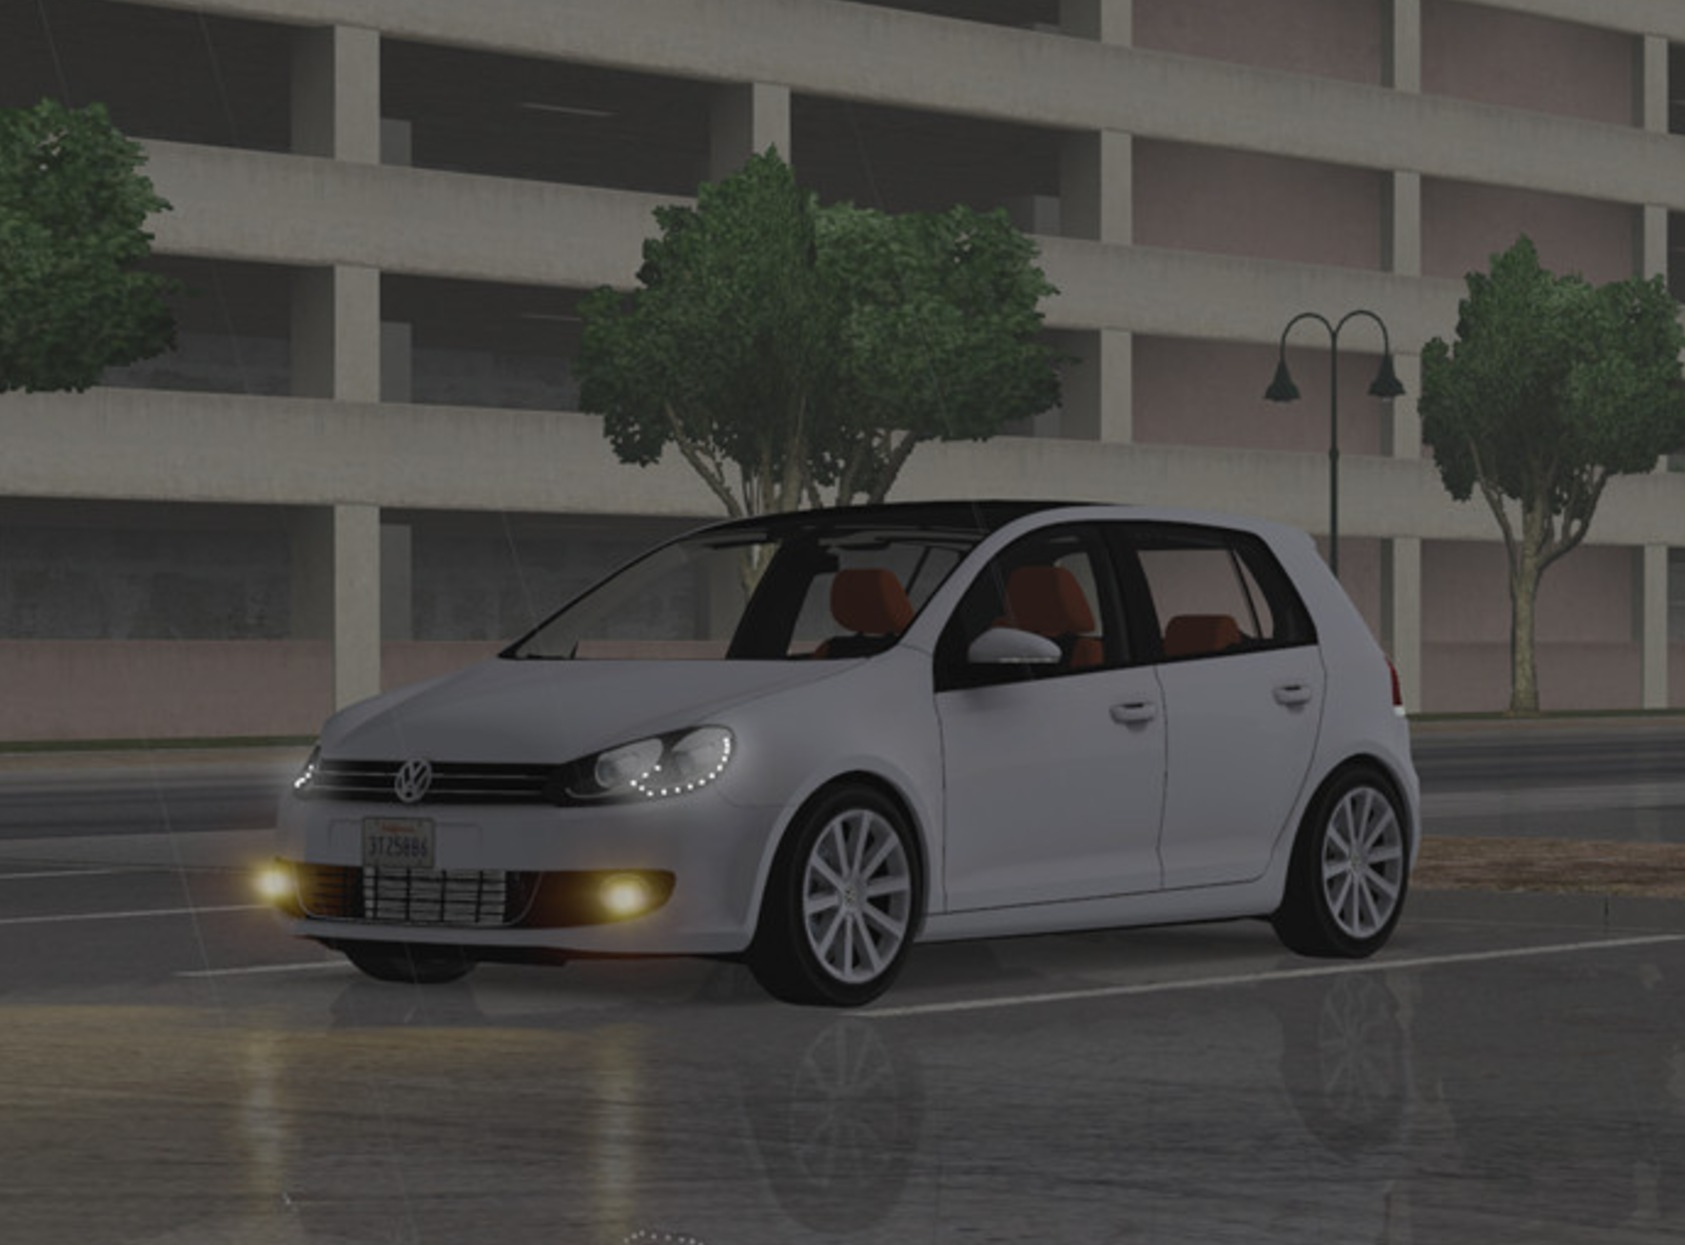 golf mk6 1 4 tsi ats euro truck simulator 2 mods. Black Bedroom Furniture Sets. Home Design Ideas